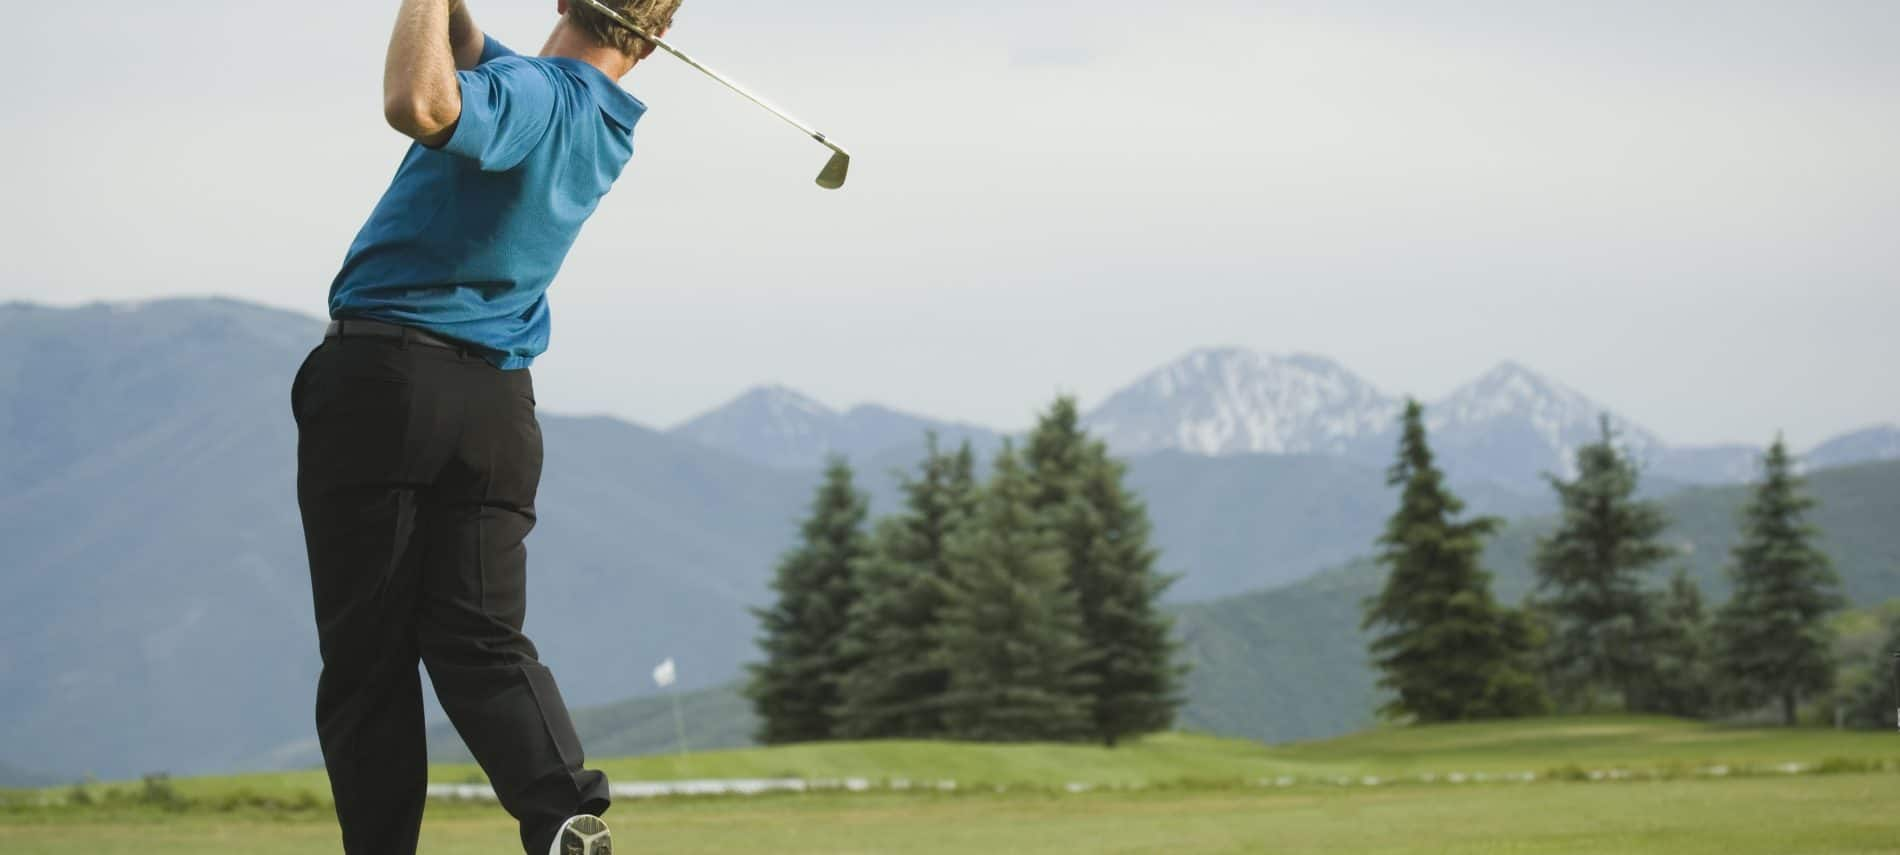 A man swinging a golf club with a backdrop of beautiful mountains